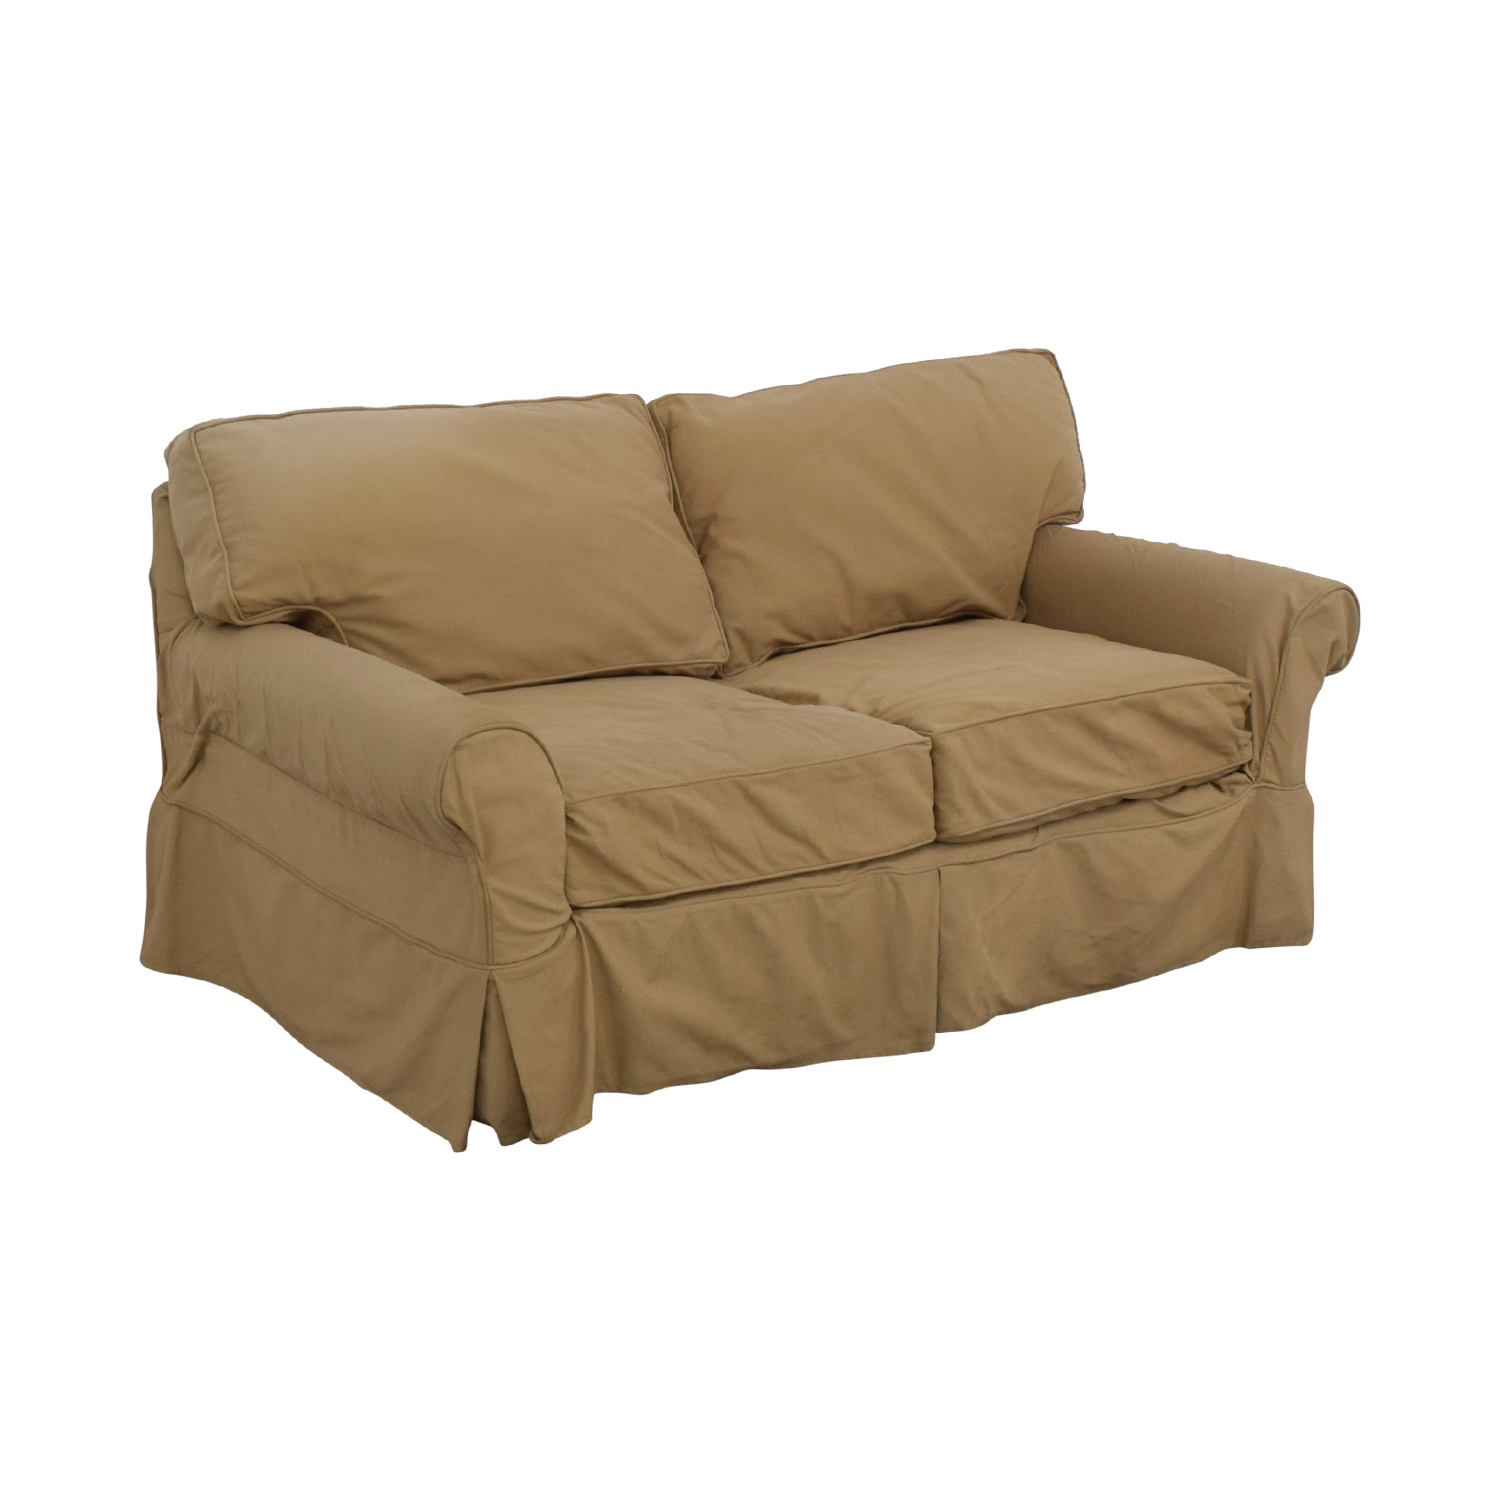 Crate & Barrel Crate & Barrel Potomac Loveseat price